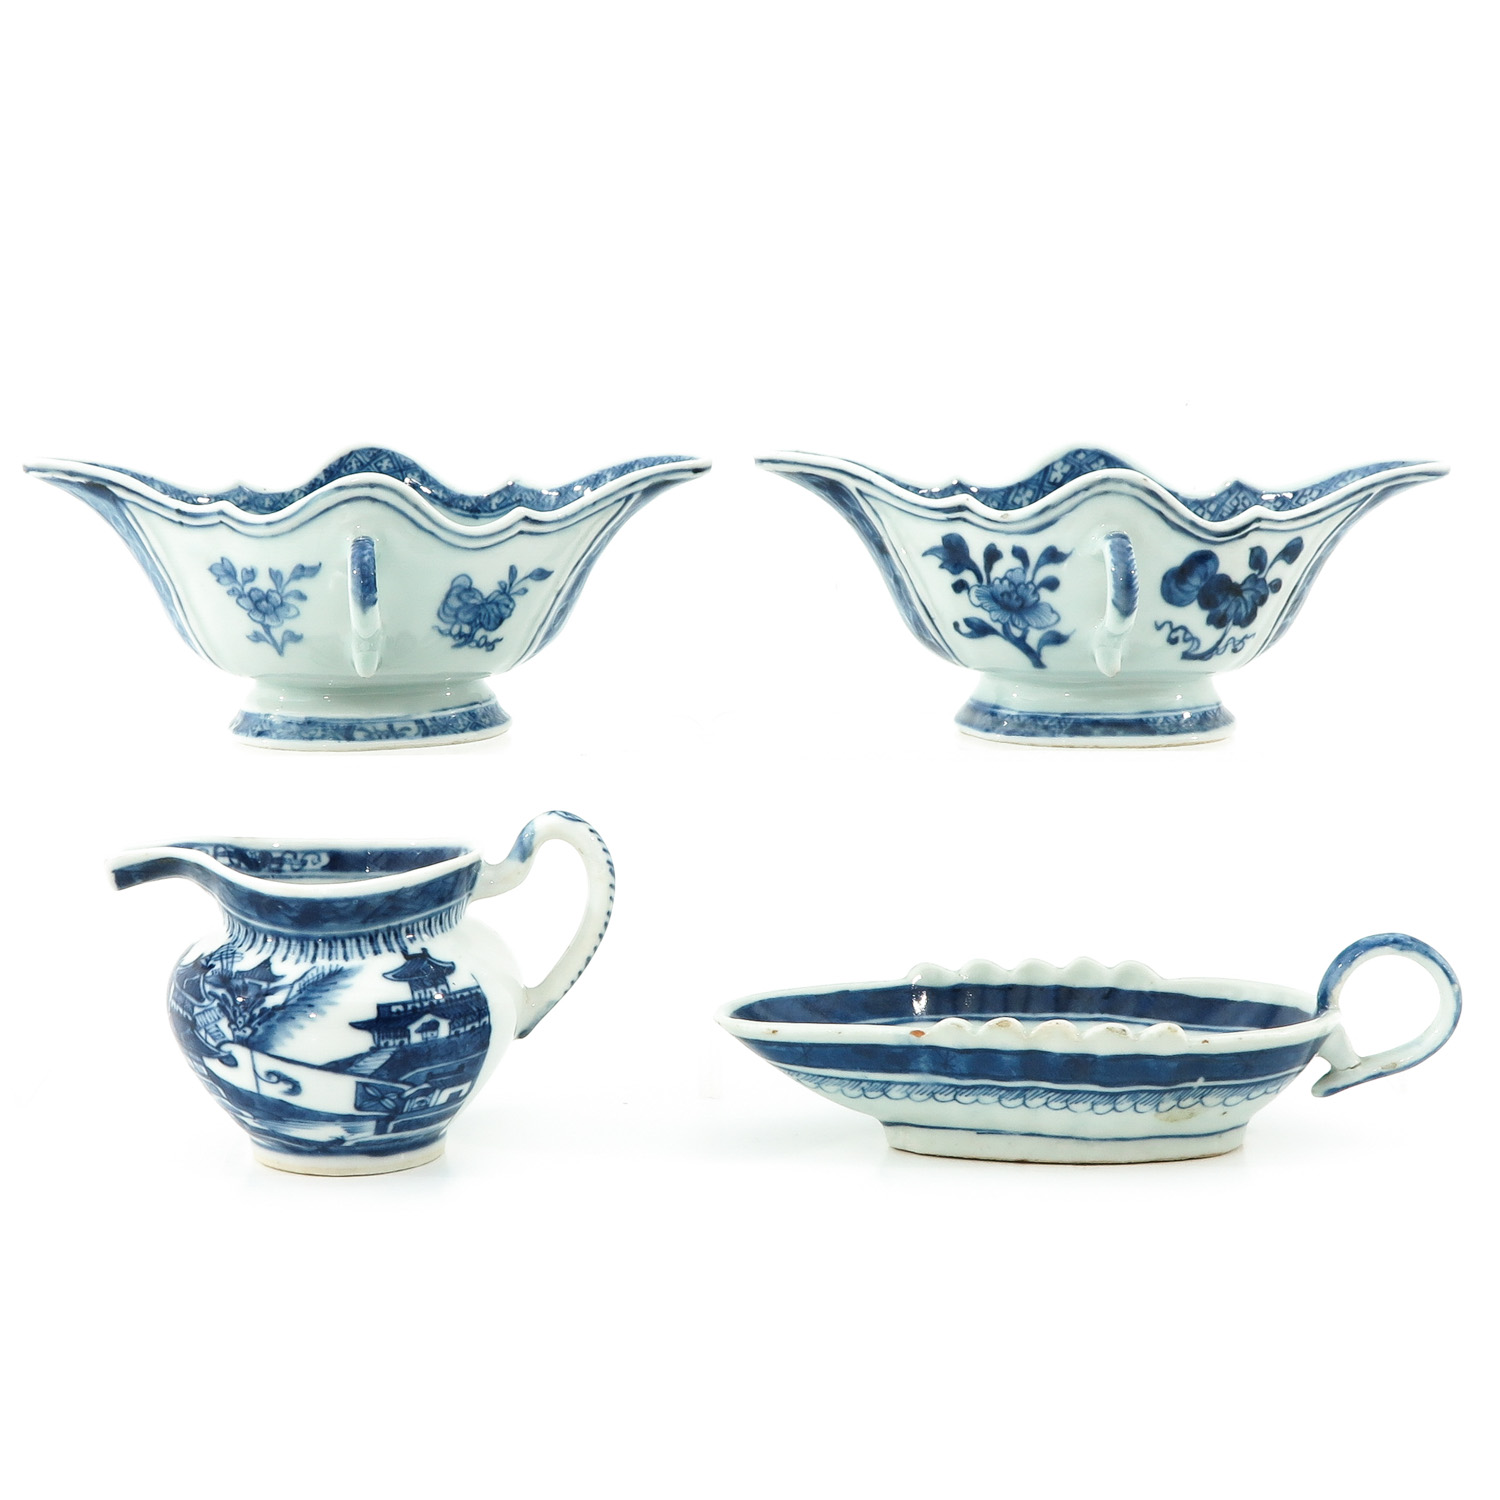 A Collection of Porcelain